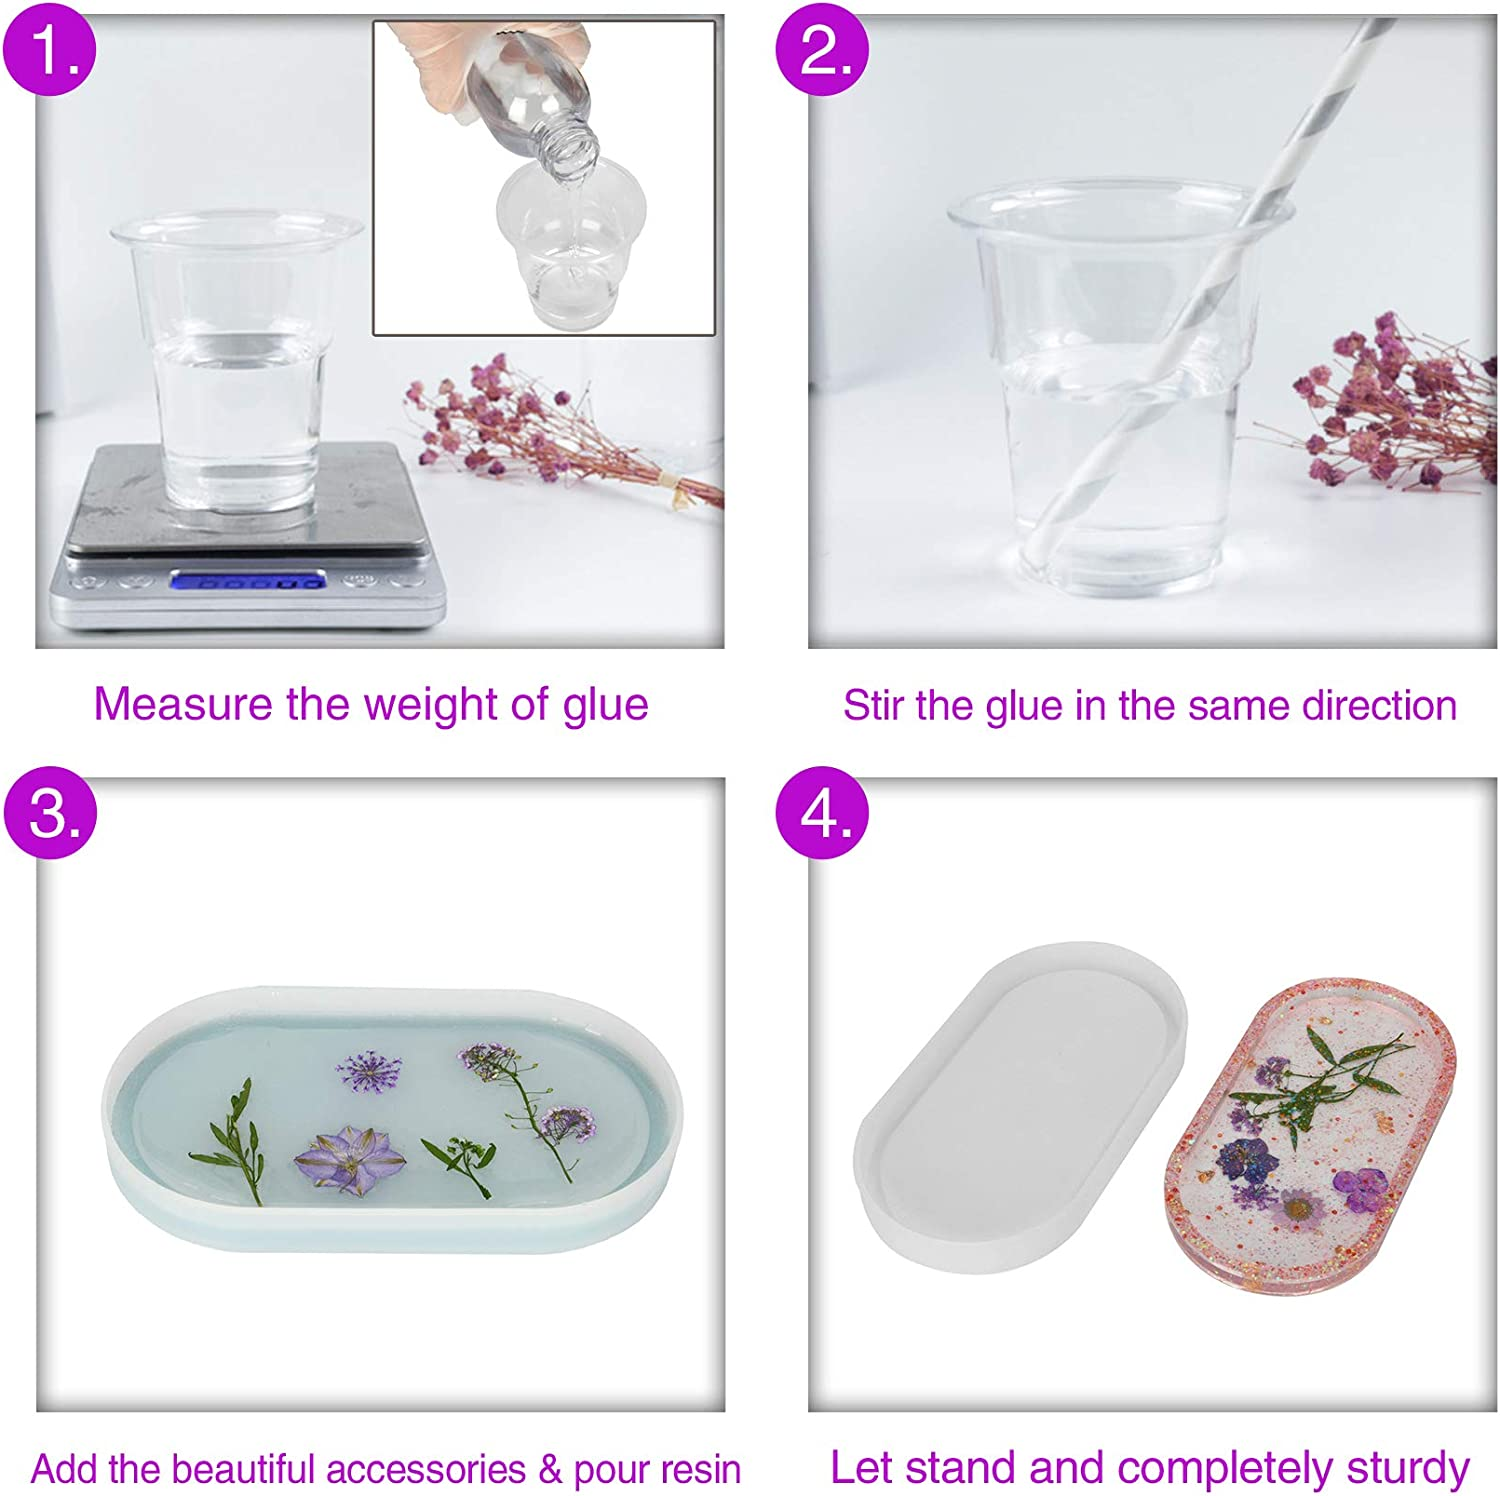 Cup Mats Easy Demold DIY Plate Resins Mould for Jewelry Holder Soap Dish 7.4/×0.7 Sapid Silicone Oval Tray Mold for Casting Epoxy Resin with Gold Rose Foil Flakes Set